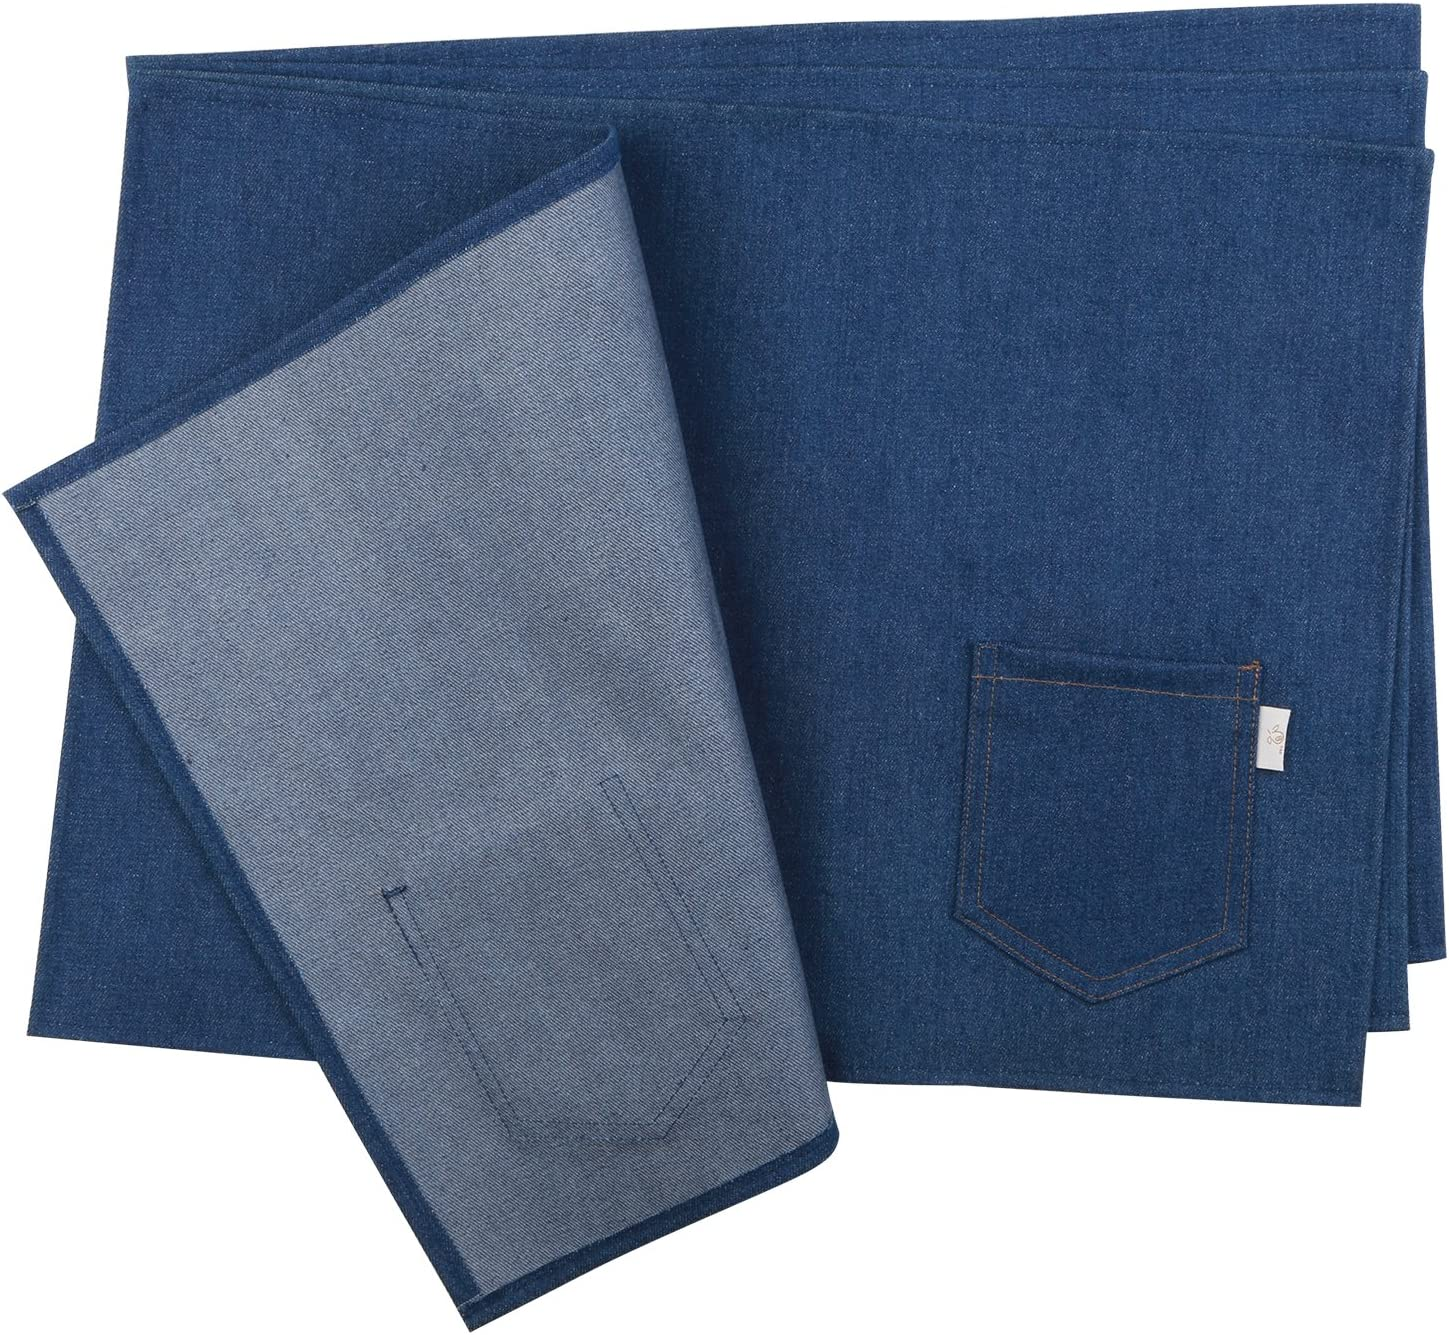 NEOVIVA Waterproof Placemats, Set of 4, Solid Indigo Blue